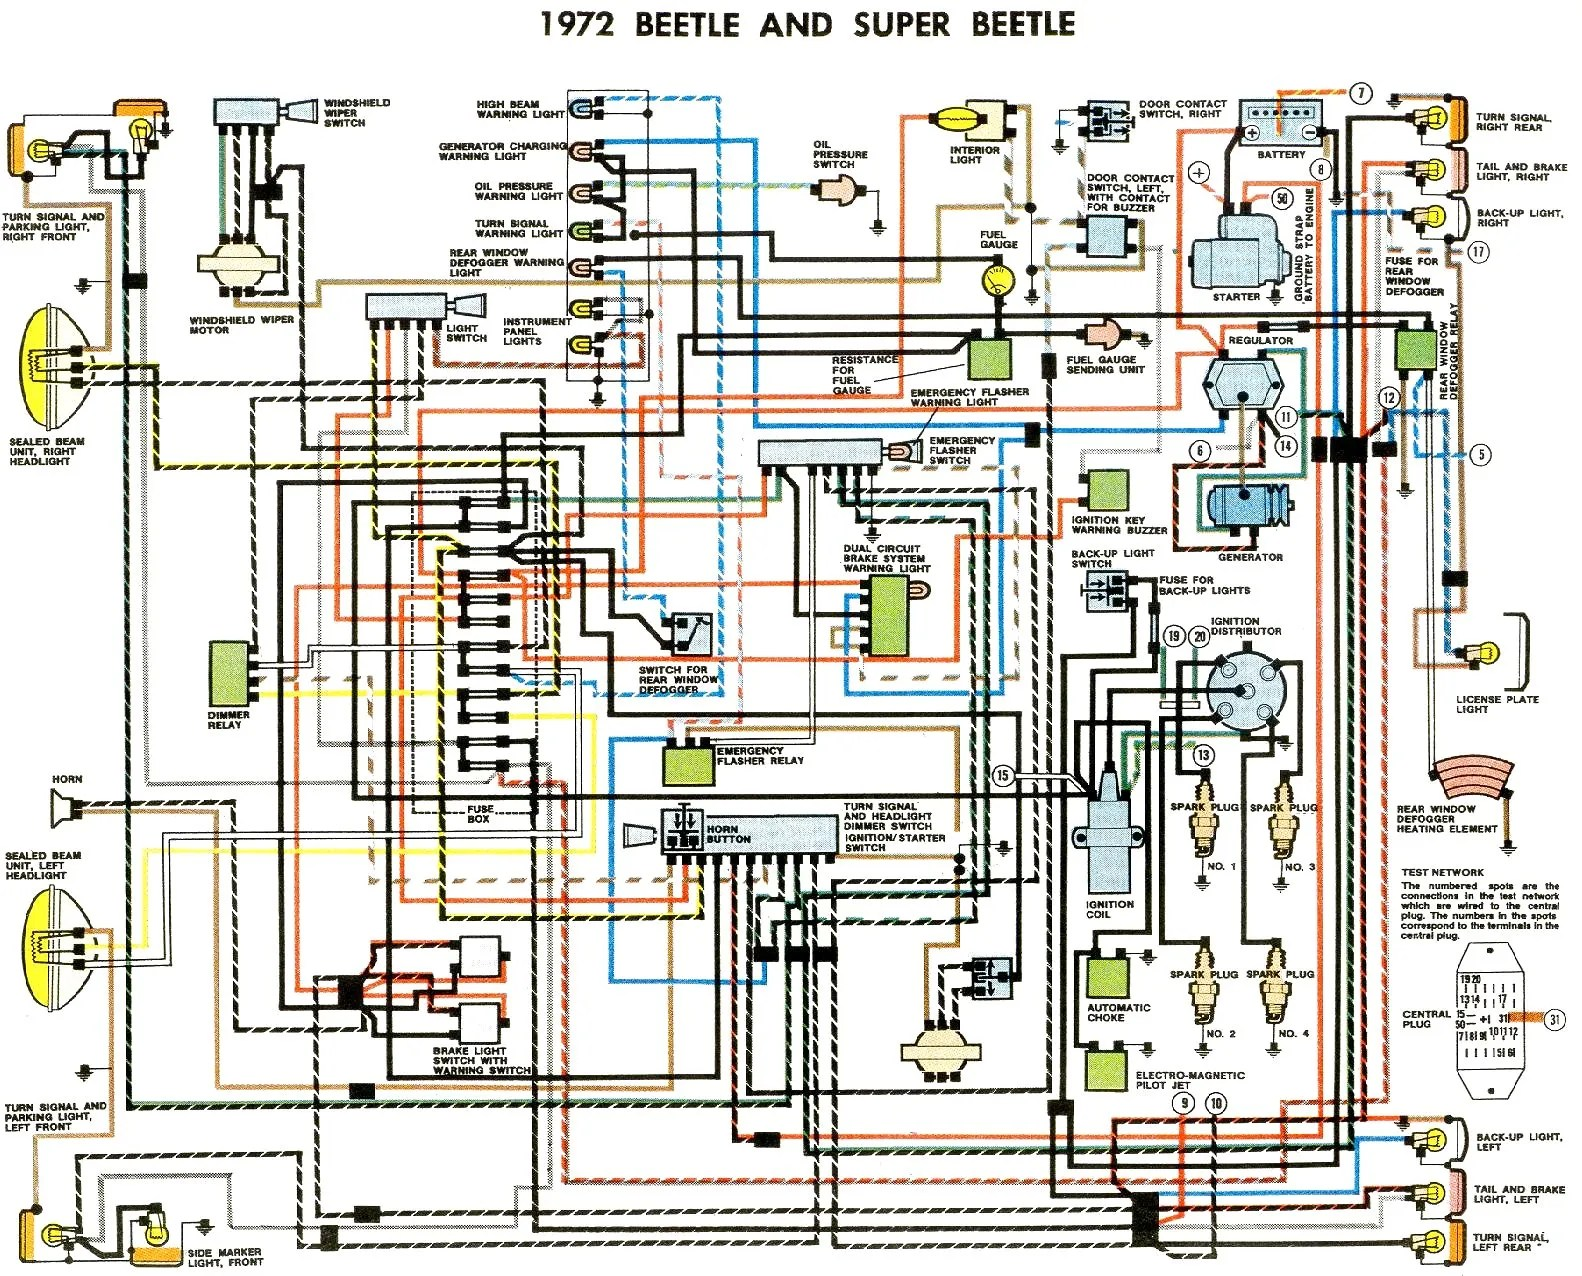 hight resolution of 72 vw bug wiring diagram wiring diagram user1972 beetle wiring diagram thegoldenbug com 72 vw beetle